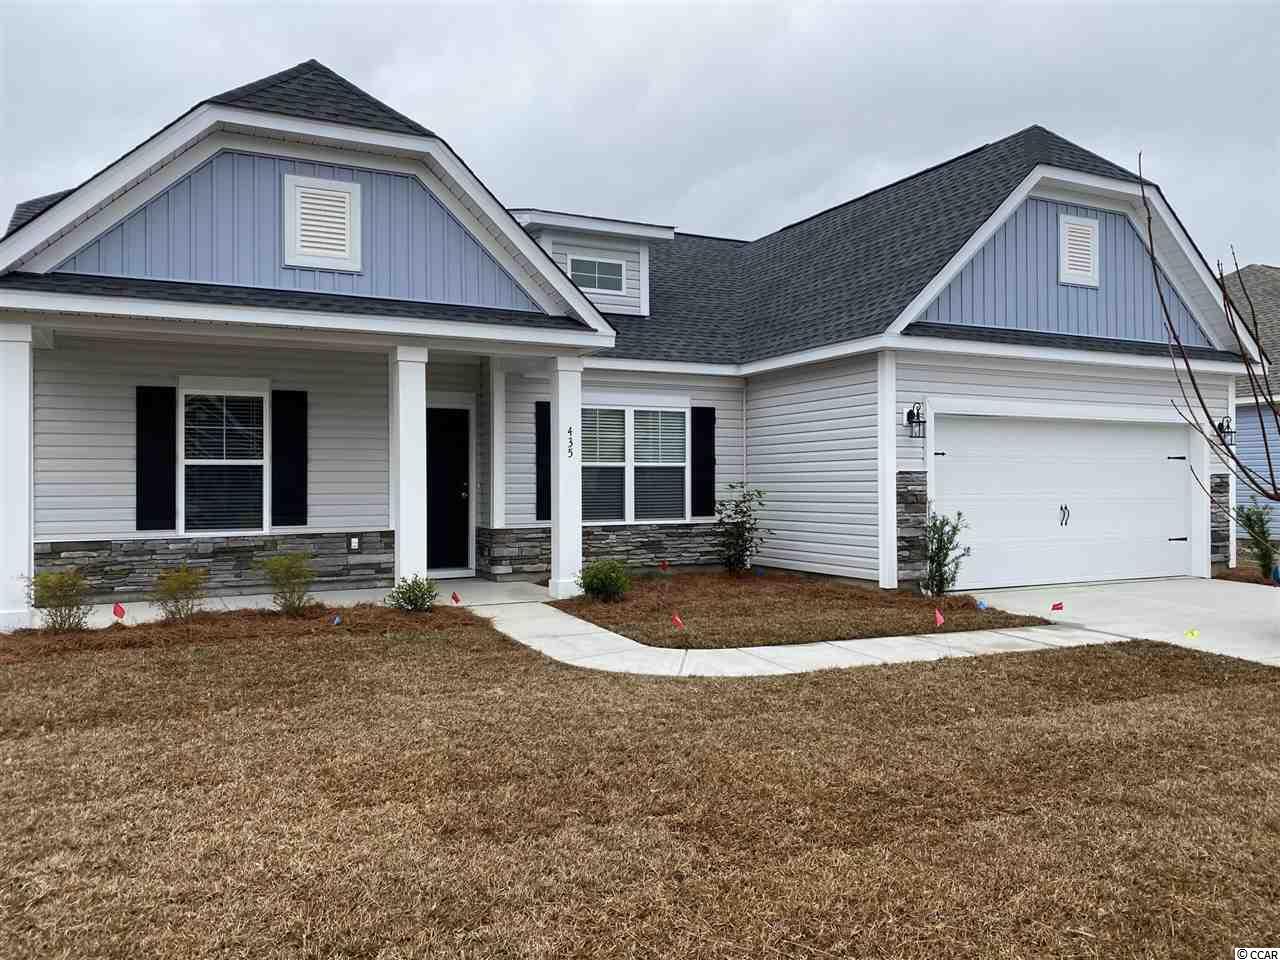 """BRAND NEW - This """"Wisteria E"""" model on lot 27 is quite the home! 3 bed, 2 bath, single level, fireplace, and backs to the pond! Welcome to Myrtle Beach and Freewoods Park... a great new neighborhood located in the St. James area of greater Myrtle Beach! The Freewoods Park Community is proud to offer a great lineup of single-story and two-story homes that range from 1,411 to over 2,100 heated square feet. These homes offer durable vinyl exteriors with stone and brick accents. There are 6 models with various elevations to choose from, the subdivision has a custom home feel and look, yet with an amazingly affordable price! Freewoods Park is an intimate 32 lot subdivision offering a relaxing neighborhood setting with light HOA restrictions for the laid-back lifestyle. But the real beauty and value of Freewoods Park begins with the free-flowing designs and upgraded interior features. Inside our homes are open concept layouts with granite countertops in the kitchen and all baths, crown molding in featured areas, recessed and pendant lighting, full wood-framed windows, staggered height cabinets with crown molding, and a whole list of energy efficient features that will save you money month after month. Step outside under your included covered back porch and enjoy your morning coffee or afternoon cocktail along with a gentle coastal breeze and the sounds of nature. Freewoods Park Subdivision is only a short drive to Surfside Beach """"The Family Beach"""", Murrells Inlet Marsh Walk, Brookgreen Gardens, shopping, and dining, but you're living in a quieter residential area away from all the tourist traffic. Now's the time for you to come discover Freewoods Park. Don't miss your chance to own one of these homes! Freewoods Park lies close to Highway 707 and Highway 31. Both are major connectors in the area which link the laid back south end of the Grand Strand with the excitement and services offered in Myrtle Beach and North Myrtle Beach. Photos are of previously built Wisteria."""